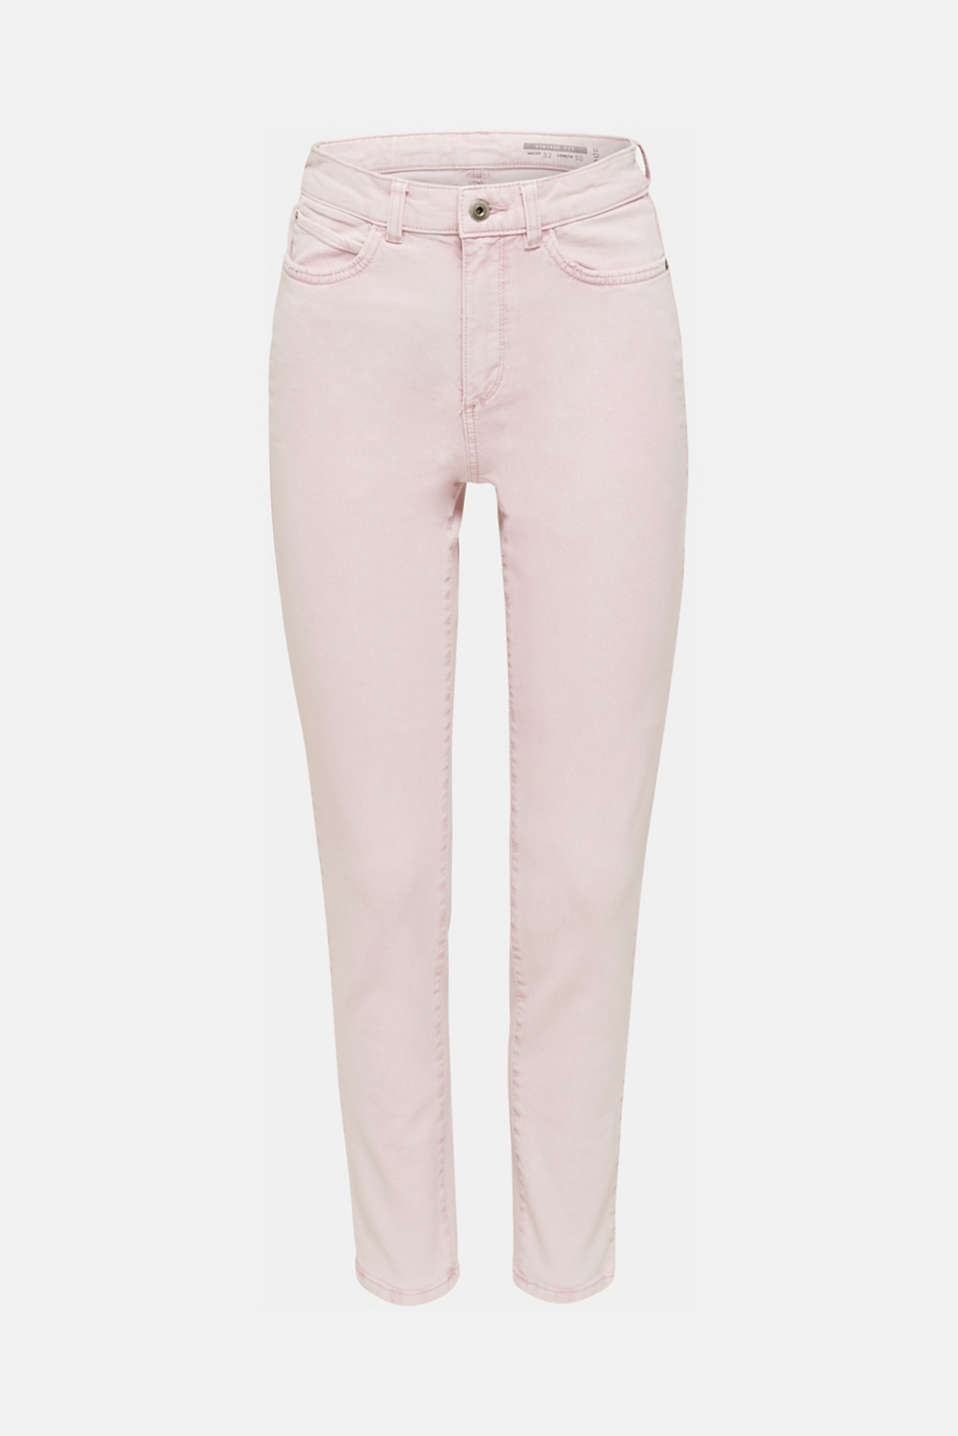 High-rise vintage wash trousers, BLUSH, detail image number 7